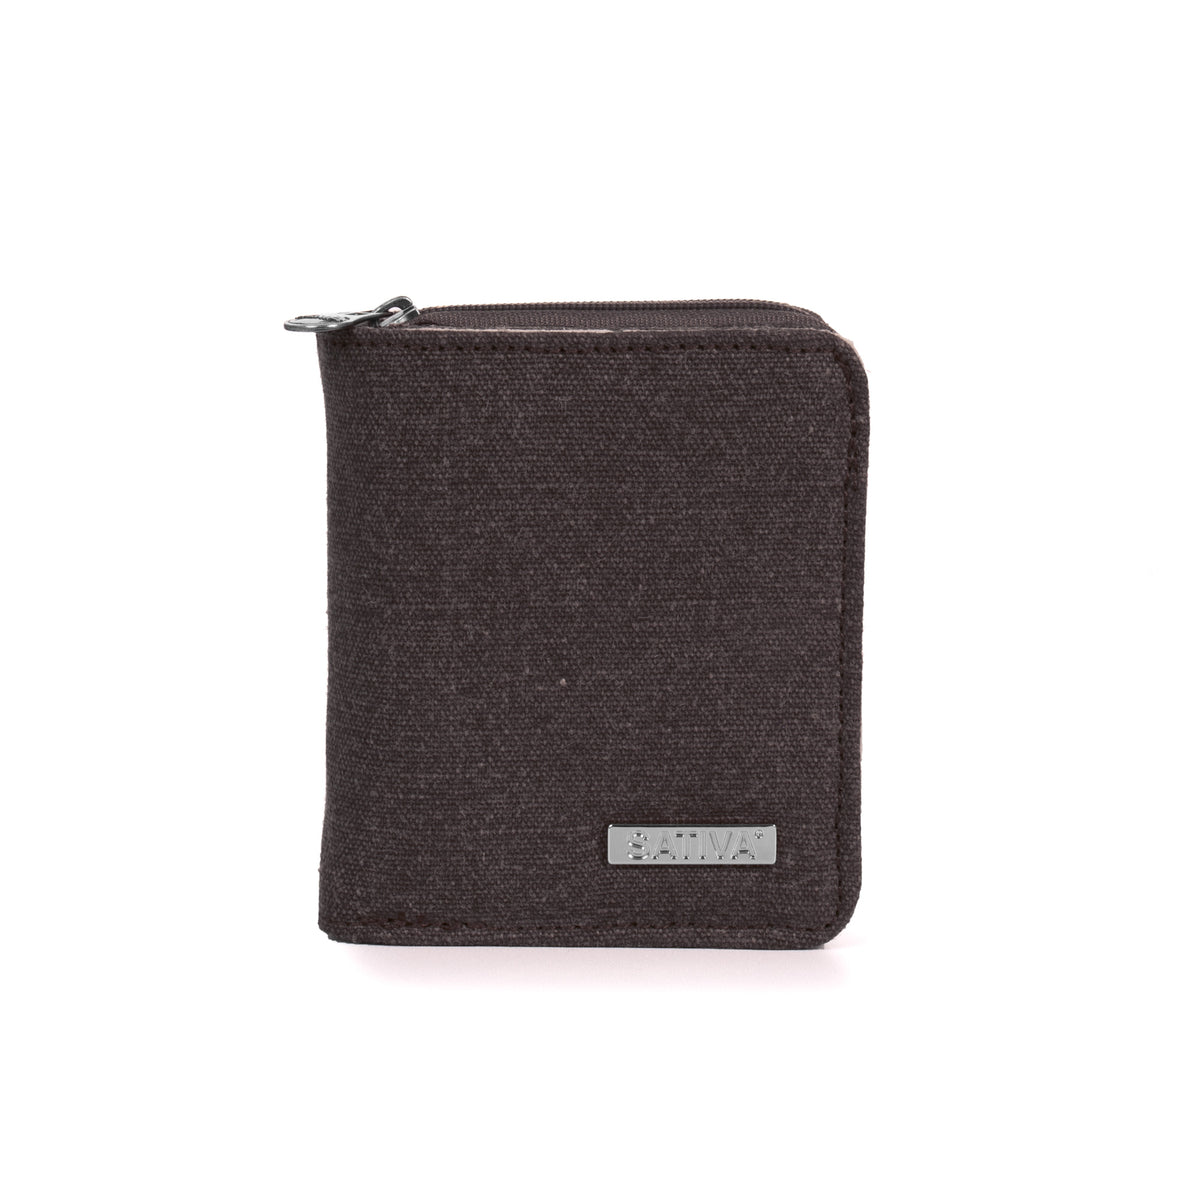 Classic Wallet -  Hemp & Organic Cotton Wallet